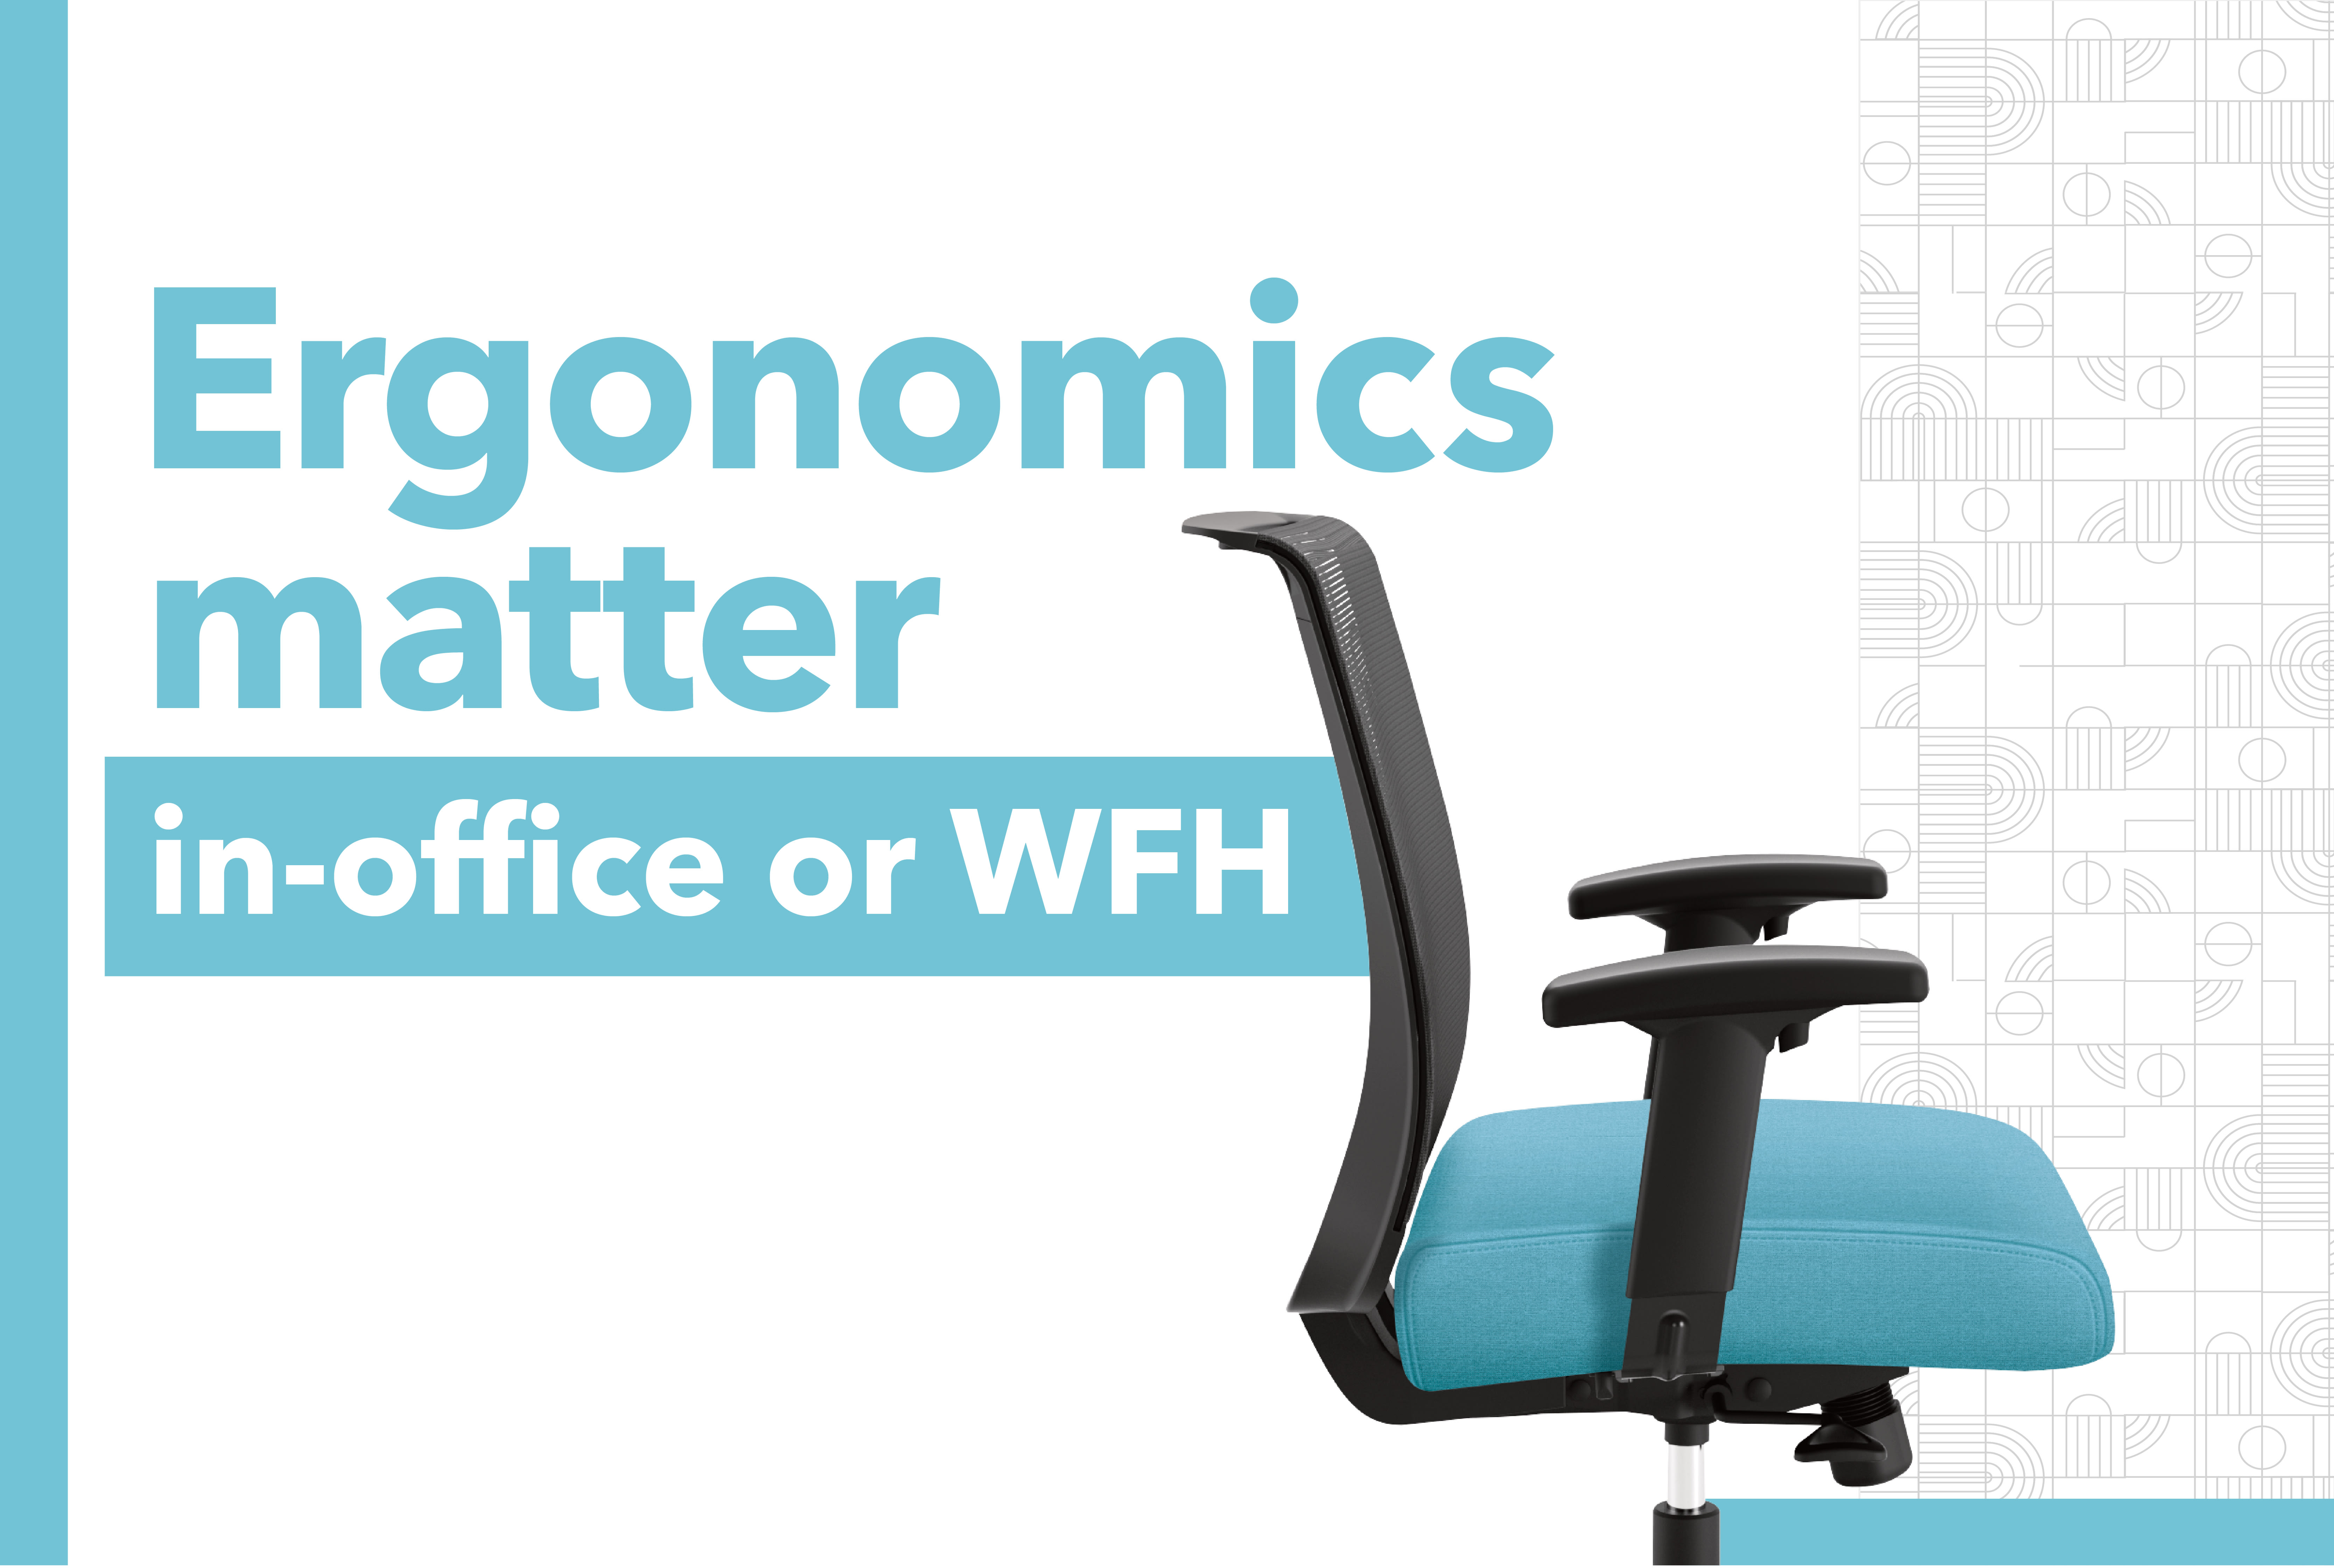 Ergonomics matter in-office or WFH